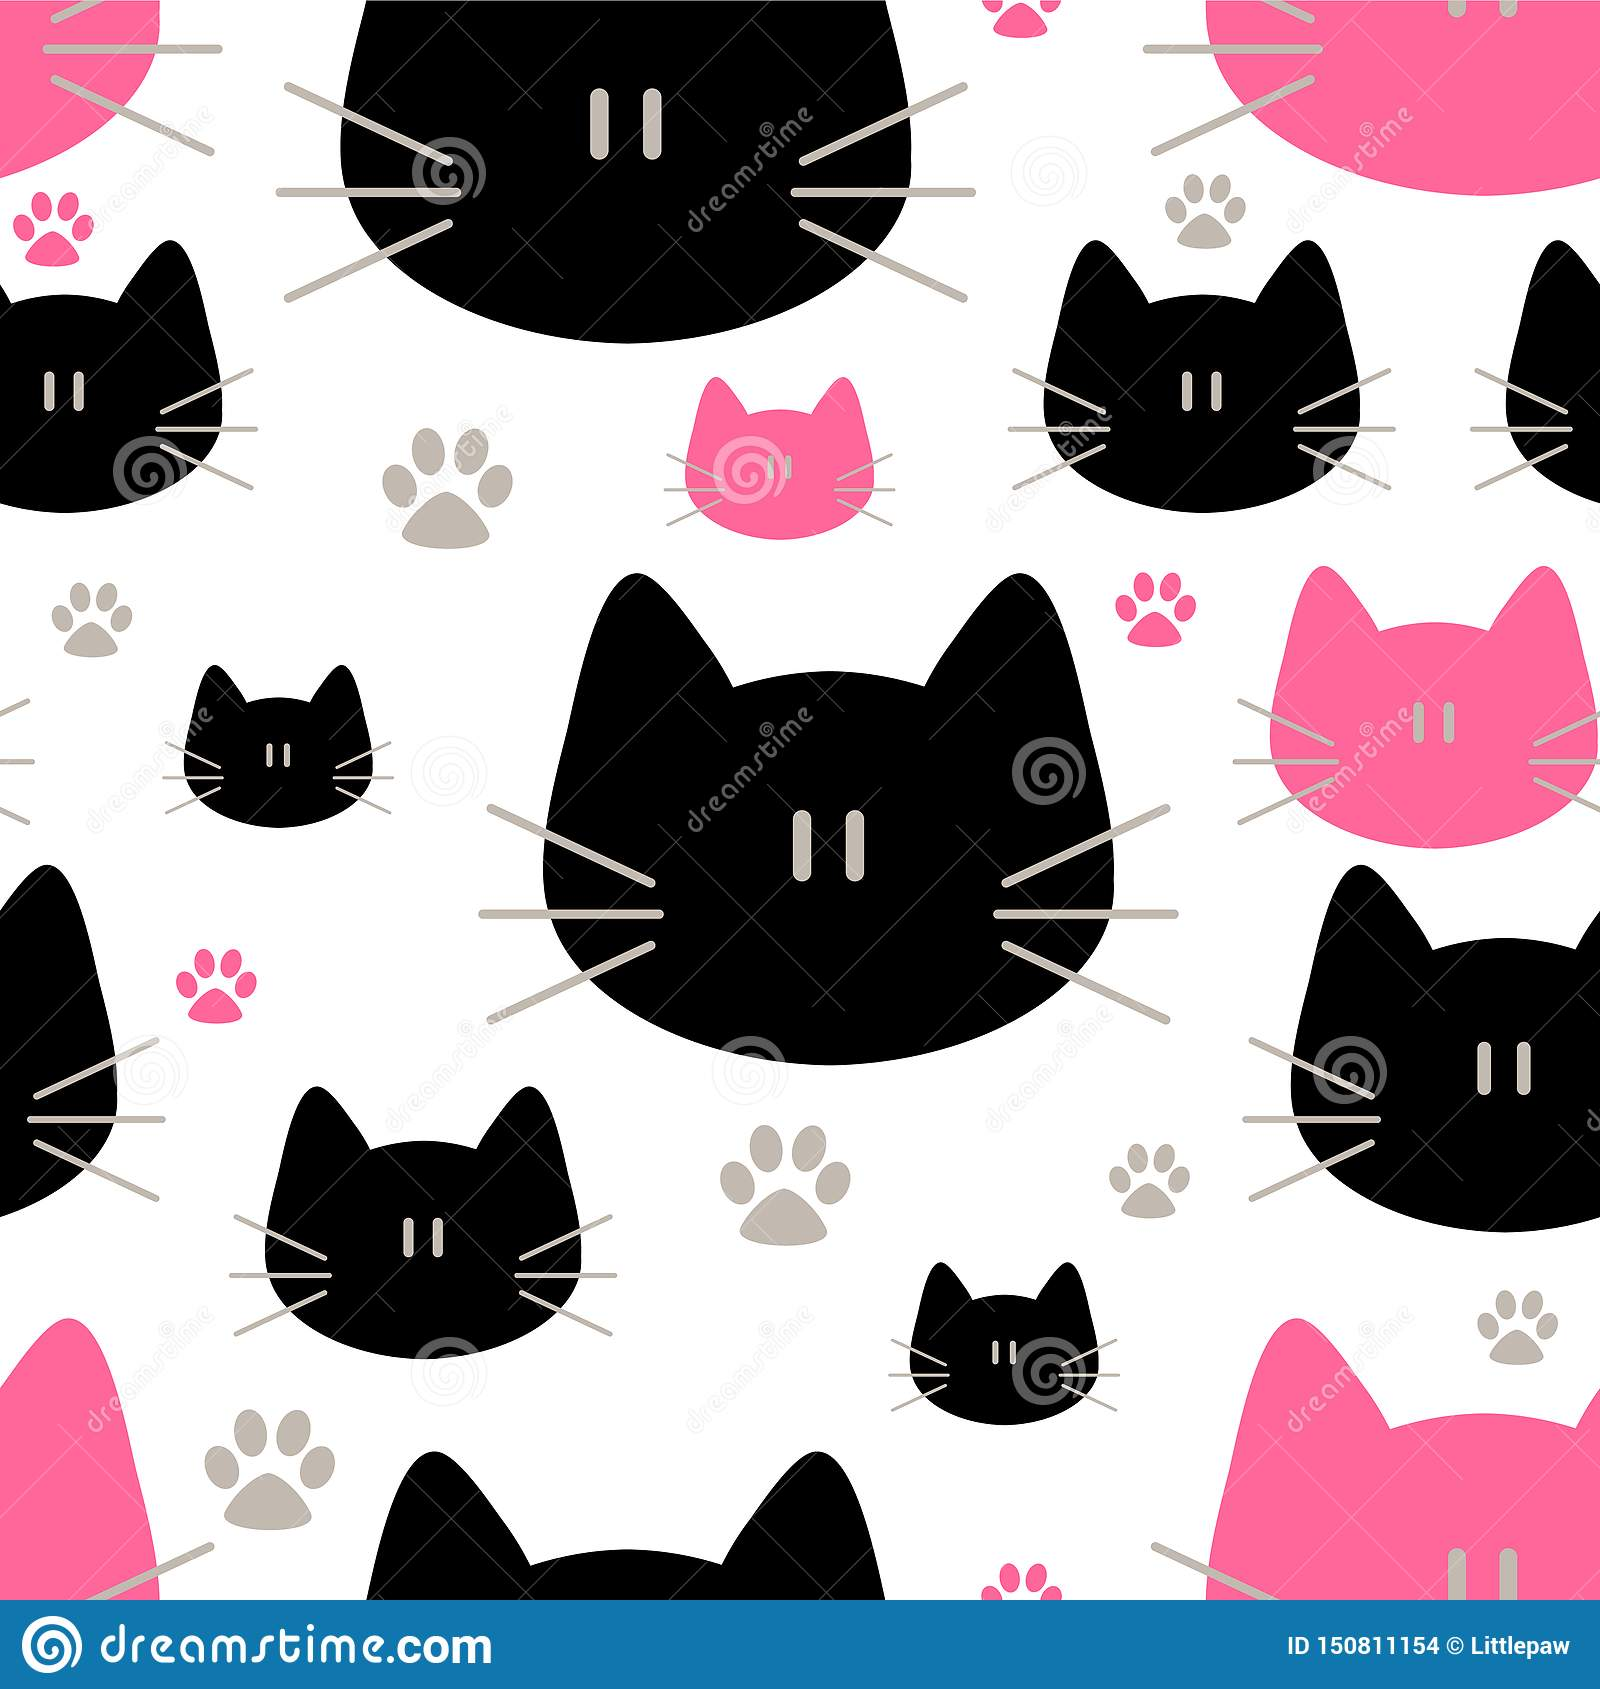 Cute Cats Seamless Pattern Sweet Kitty Texture For Wallpapers Fabric Wrap Web Page Backgrounds Vector Illustration Stock Illustration Illustration Of Heart Couple 150811154